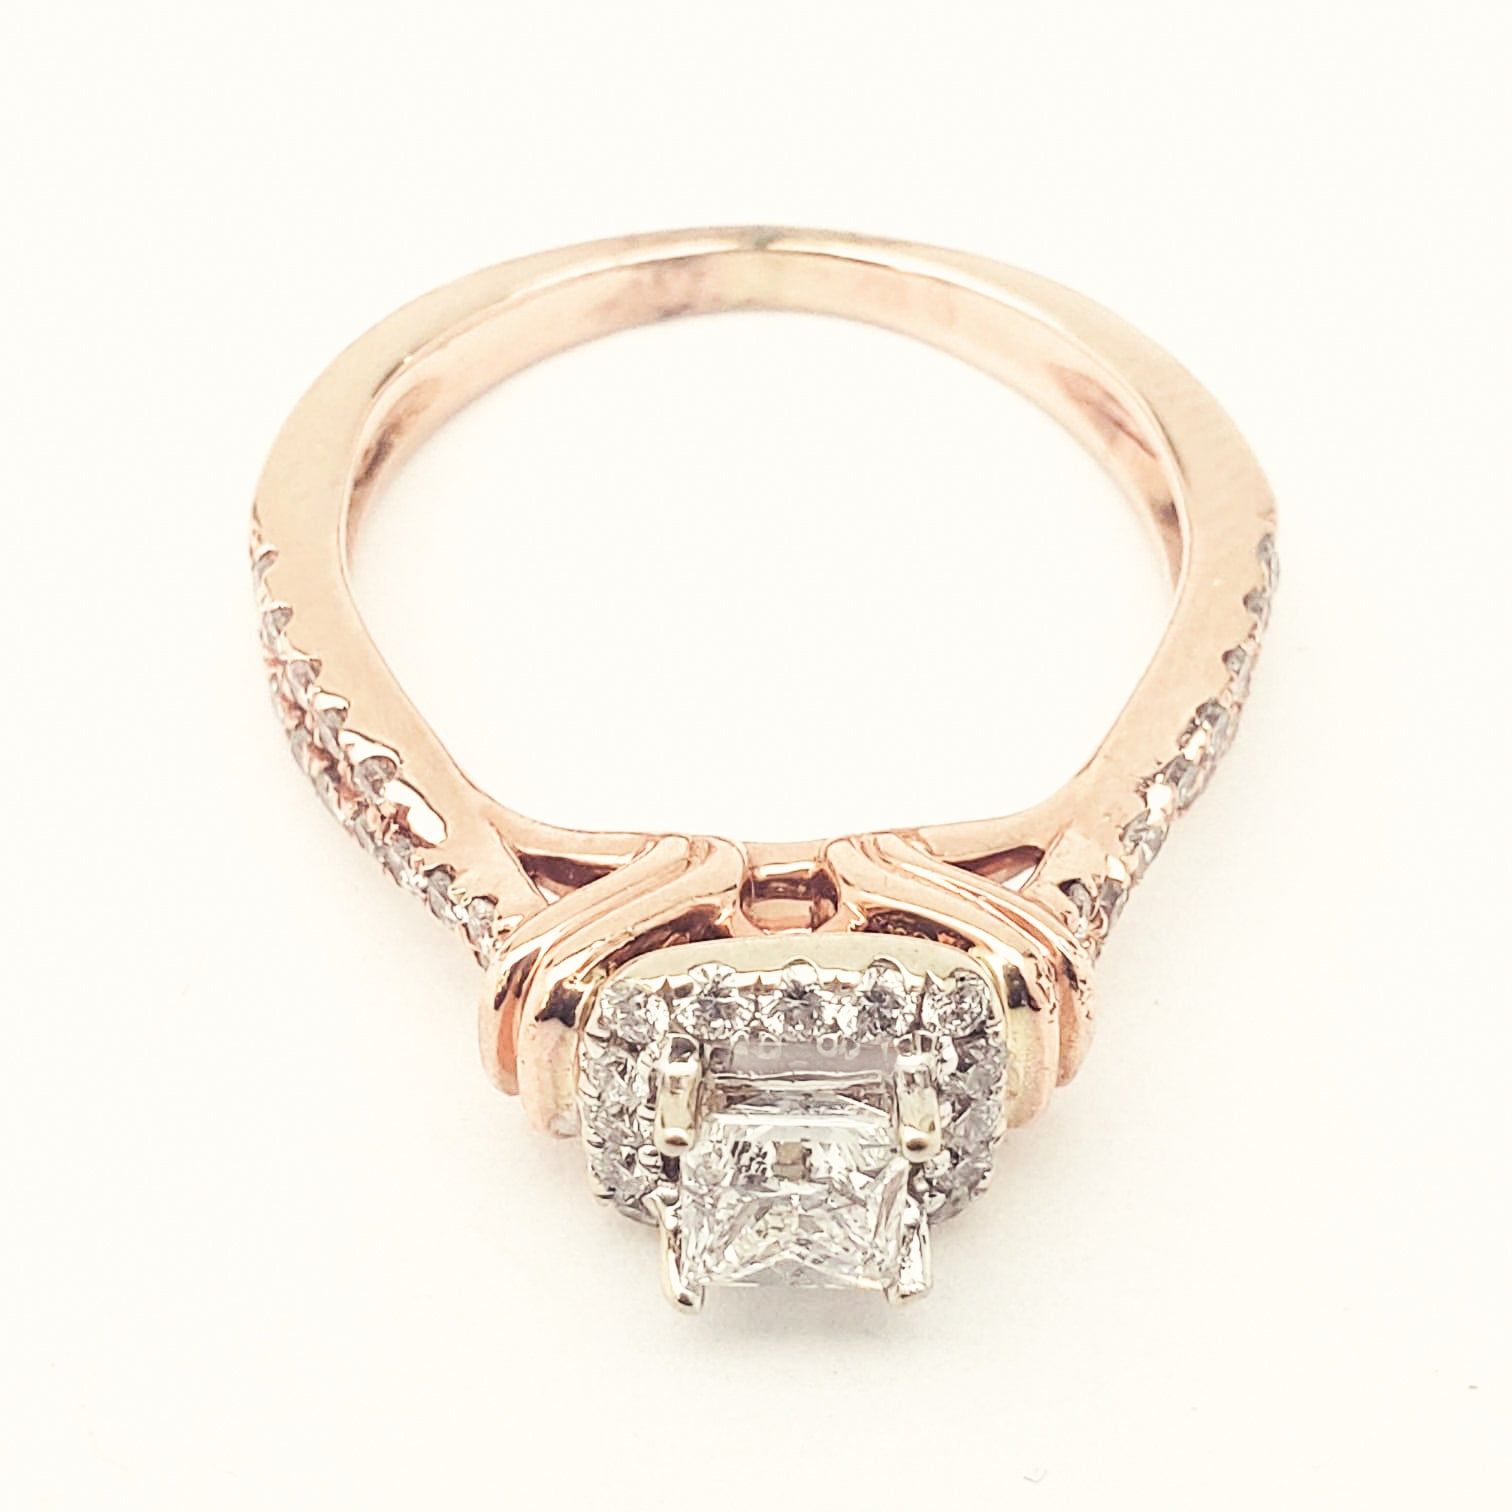 Ladies 14K Rose Gold Solitaire Diamond Ring - Size 5.5